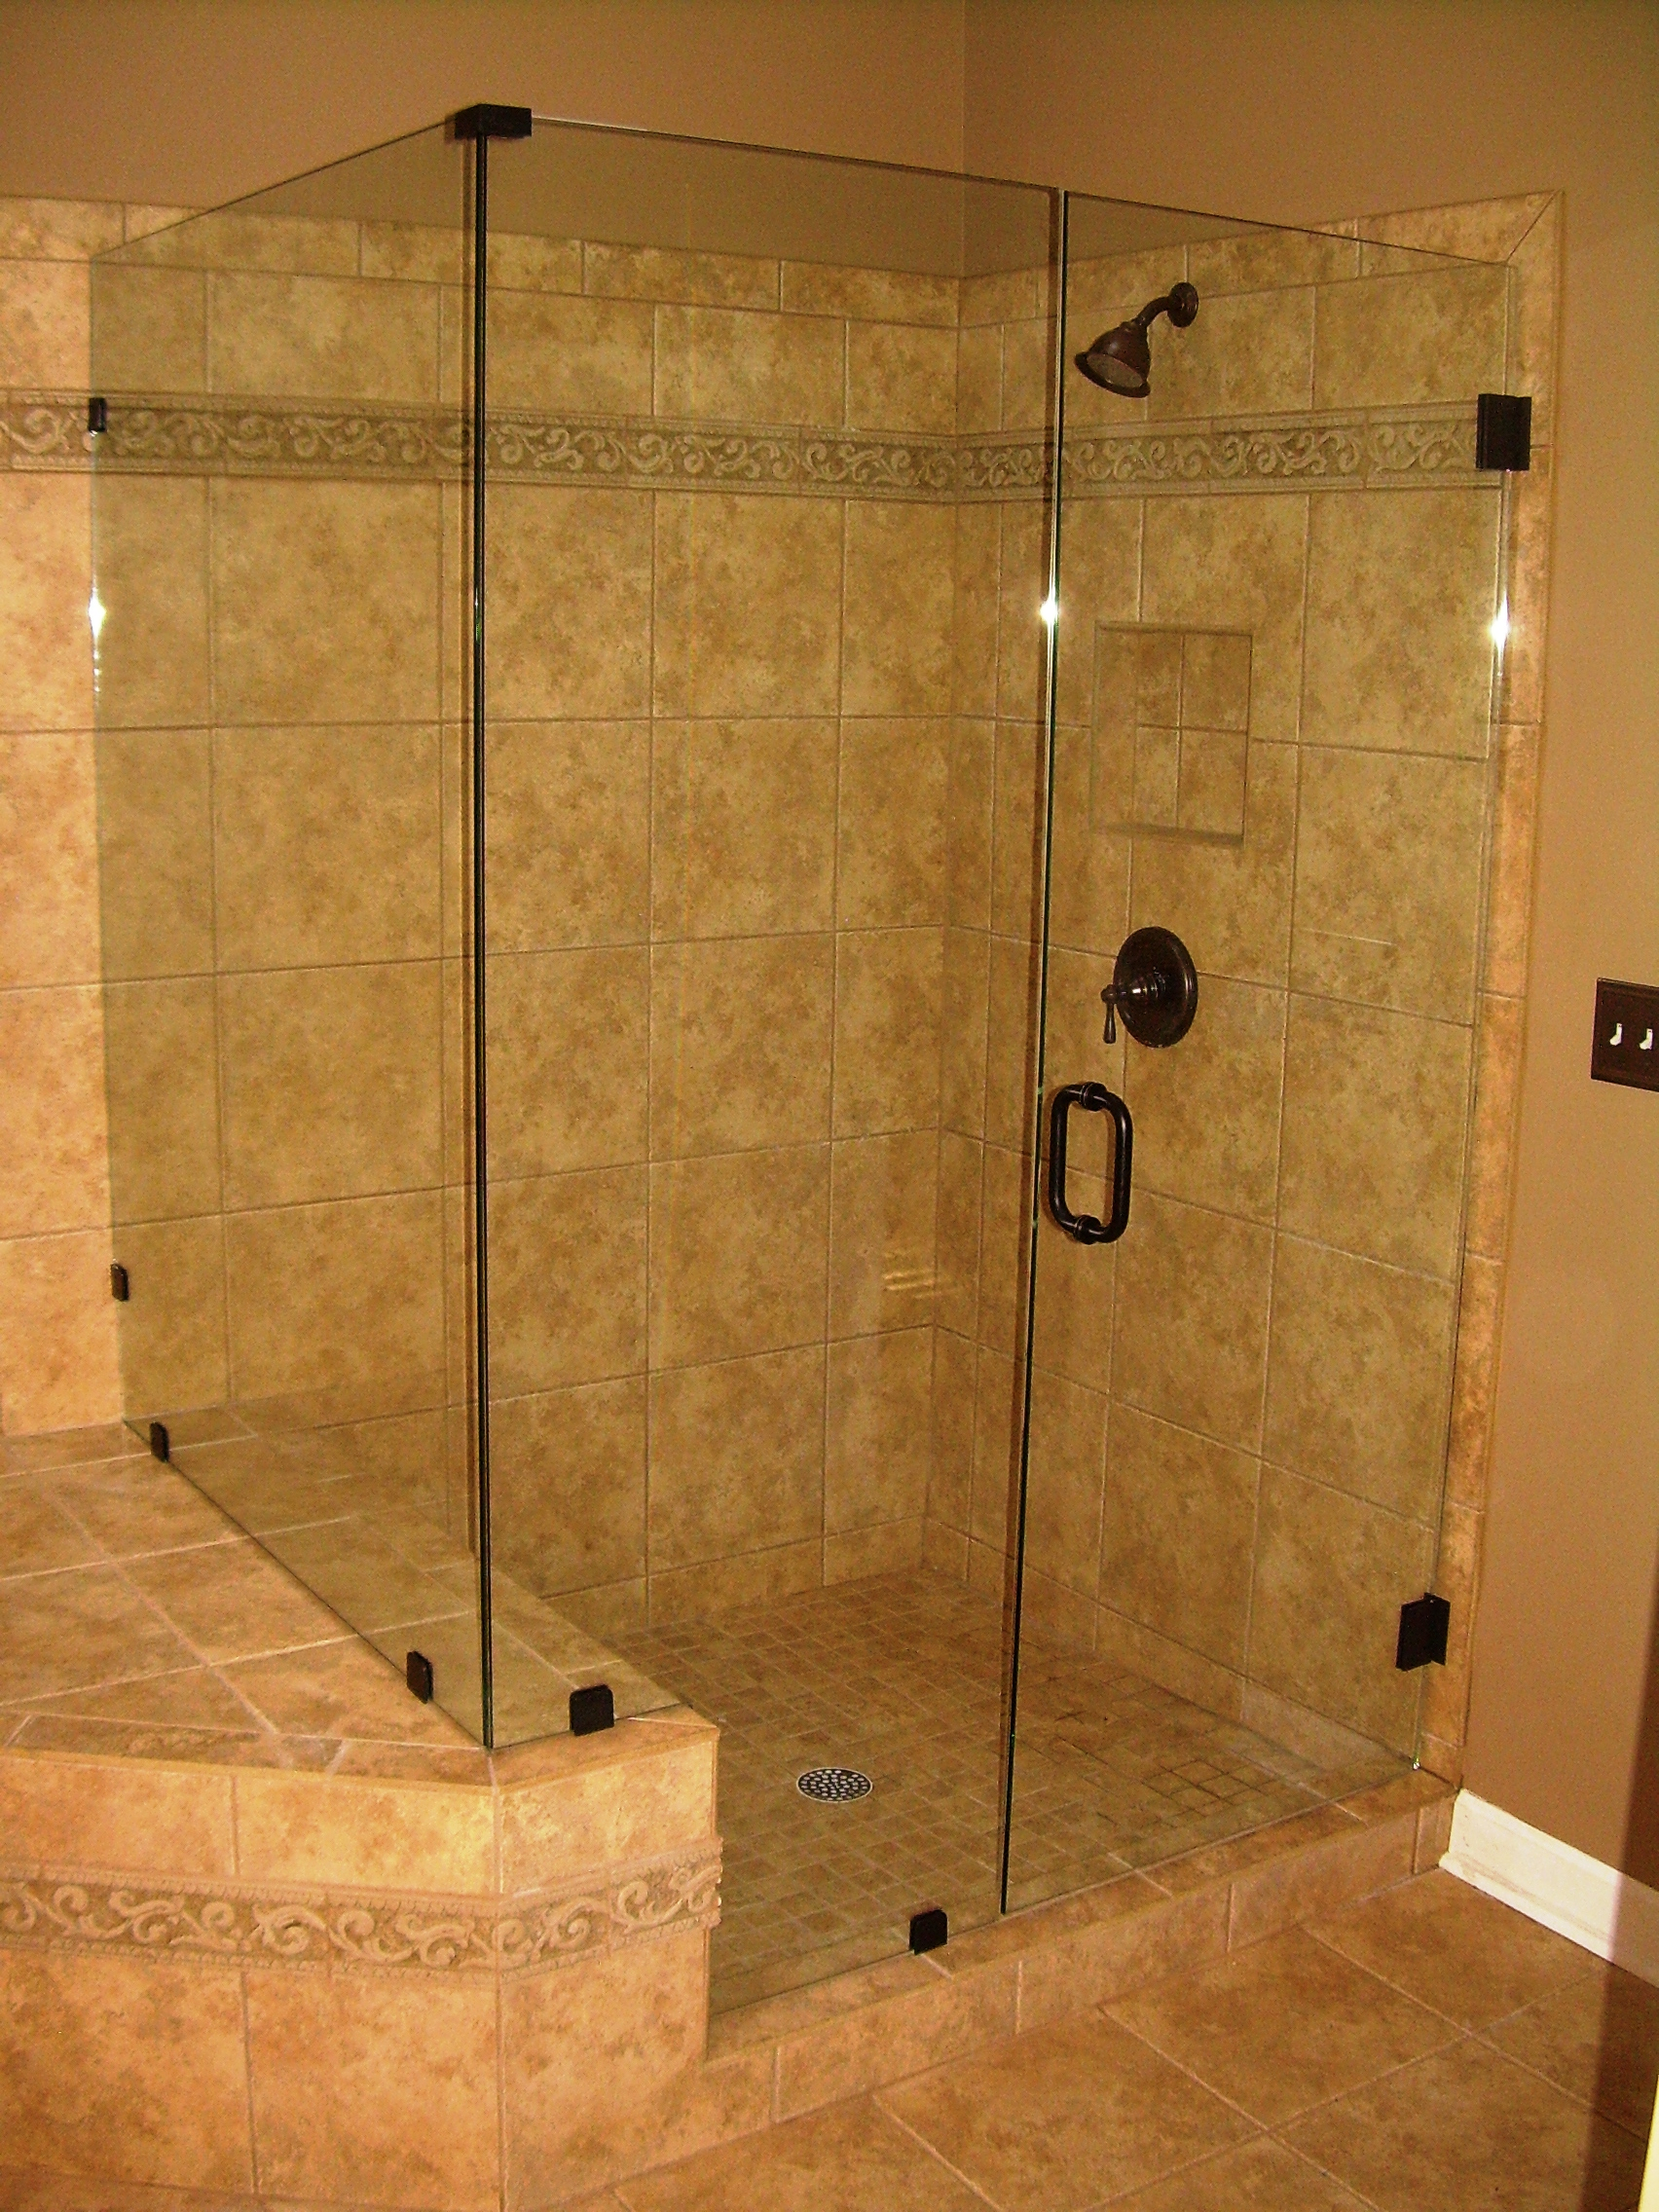 How to Clean Glass Shower Doors - Jenna Pope Writes